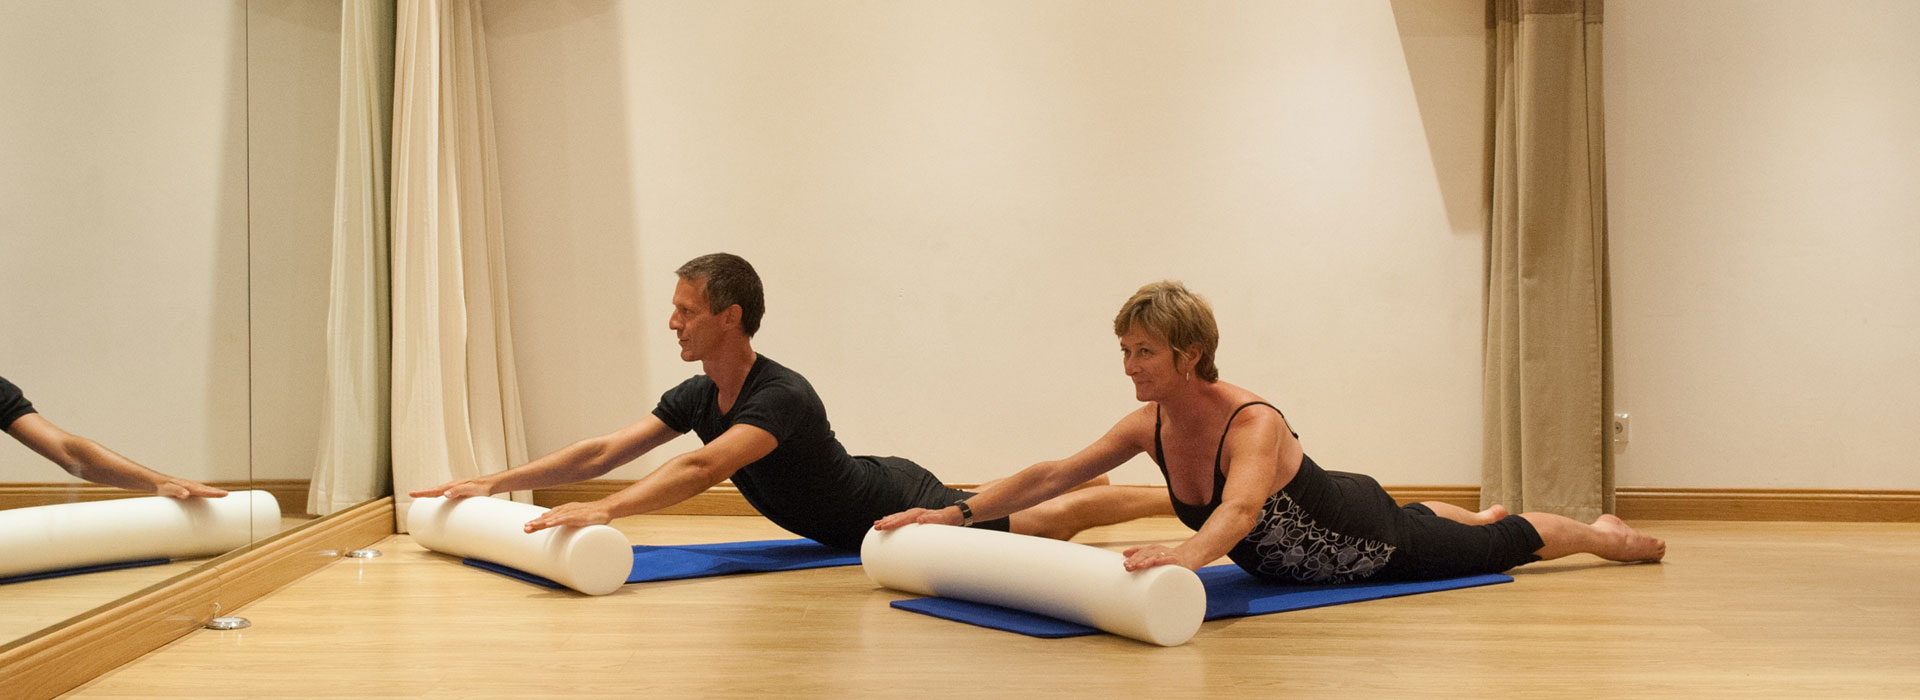 Pilates classes in Sainte Foy Tarentaise